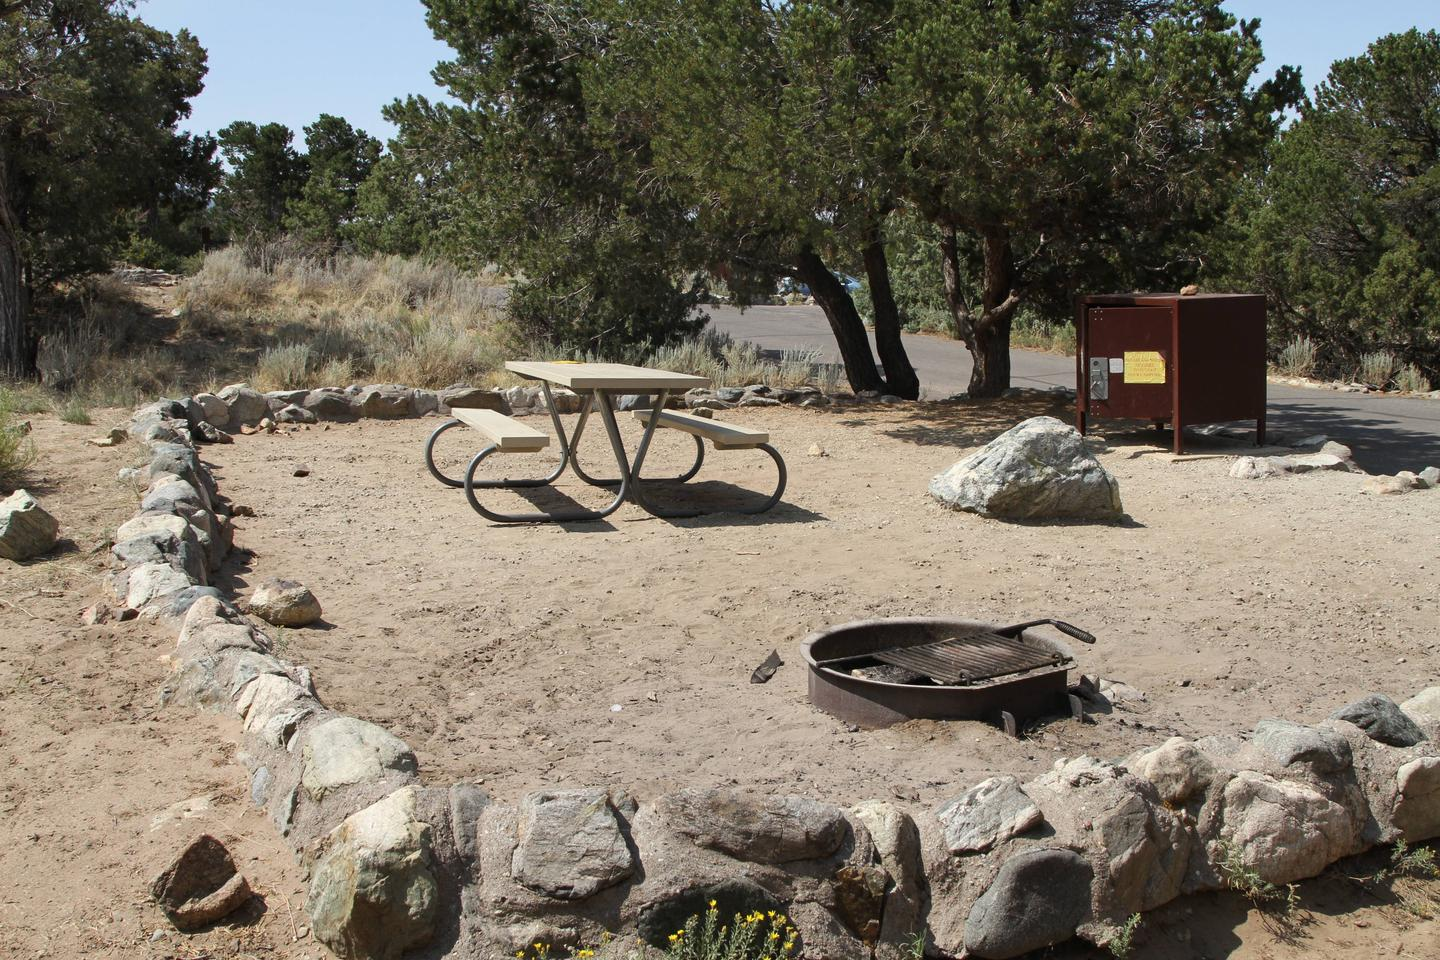 Site #5, Pinon Flats Campground